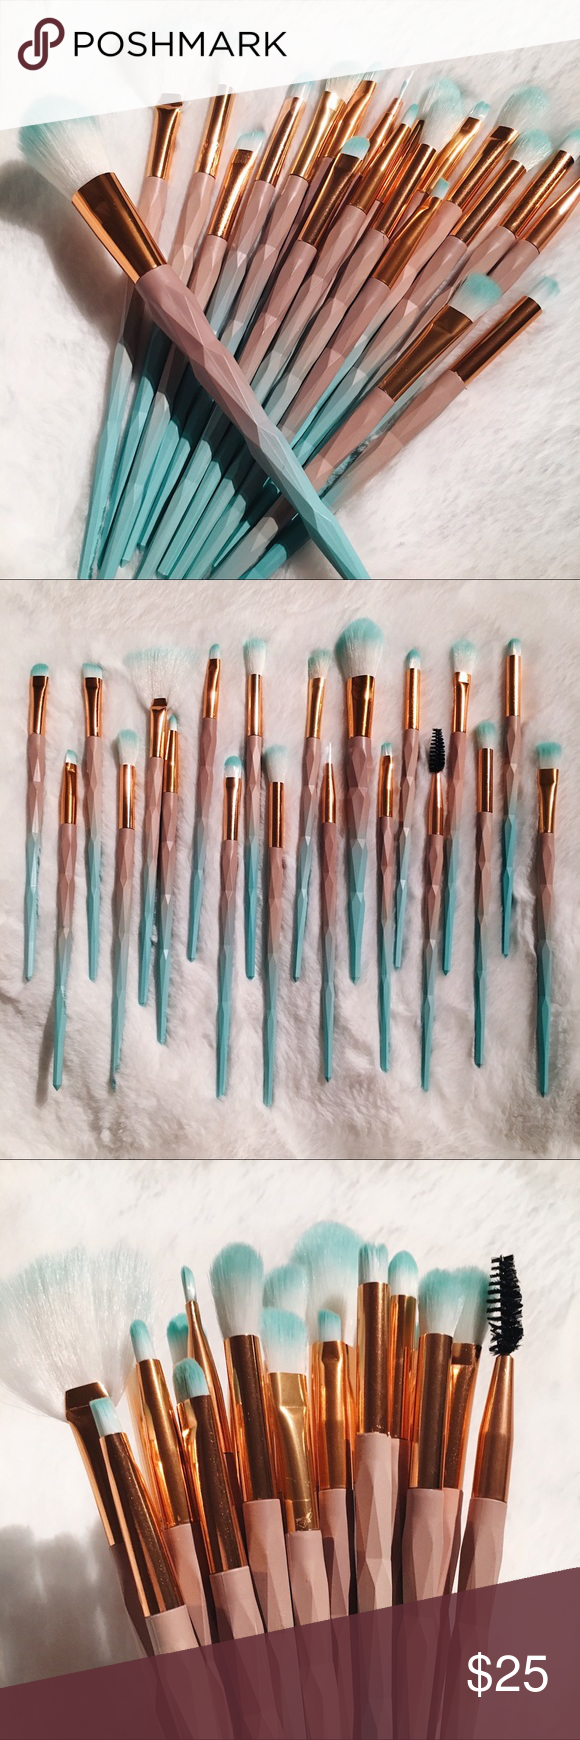 Mermaid Vibes Luxury Makeup Brushes 20ct NEW 20 piece set